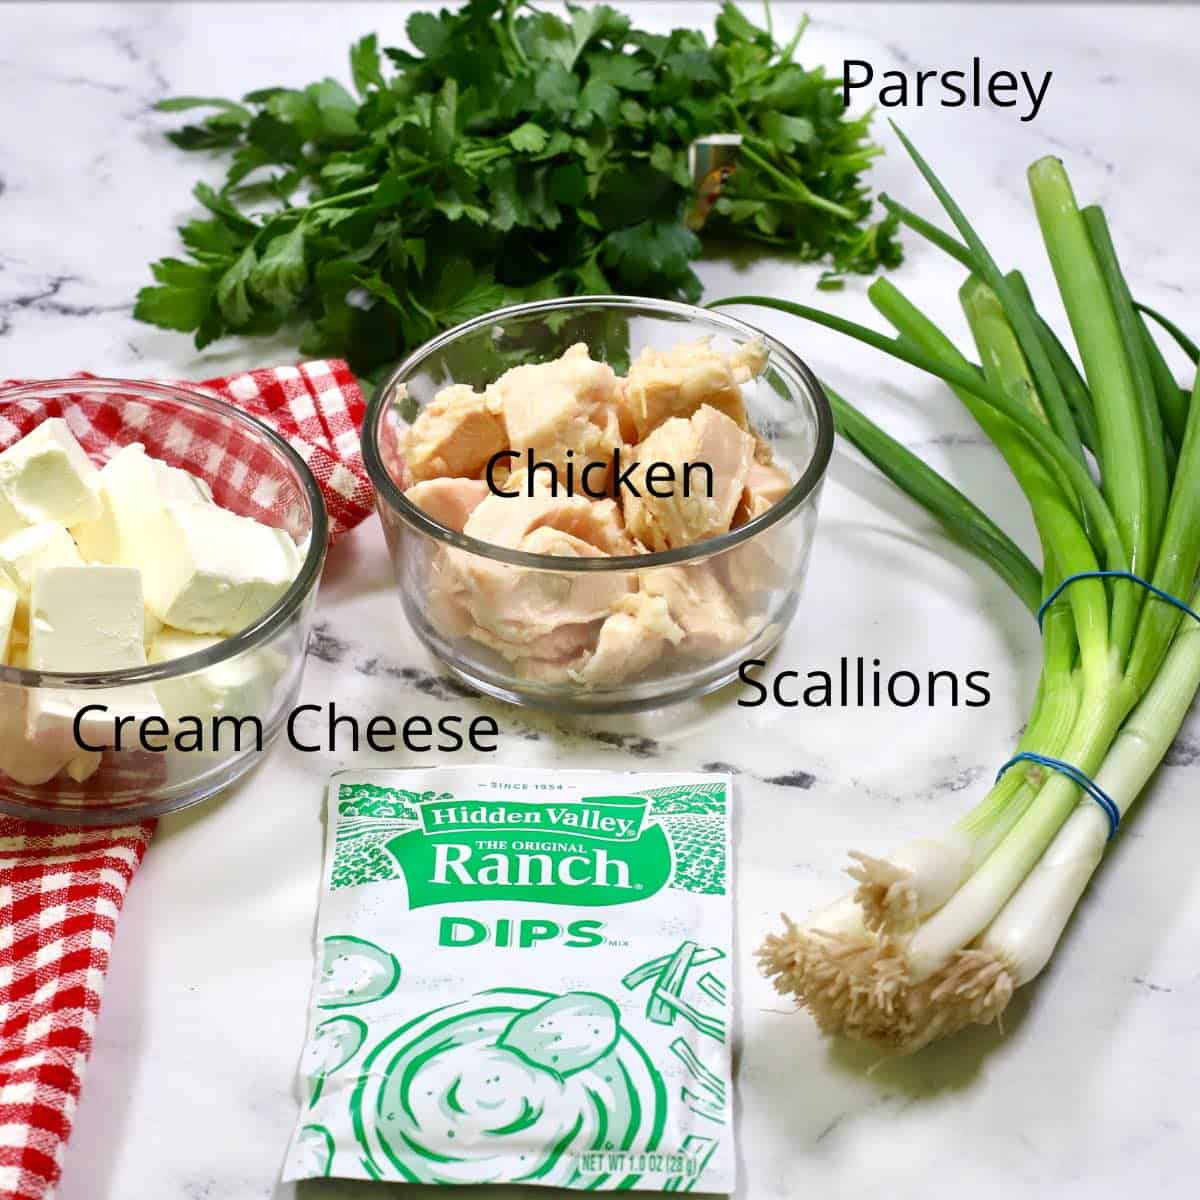 Ingredients for chicken ranch dip including cream cheese, scallions and chicken.